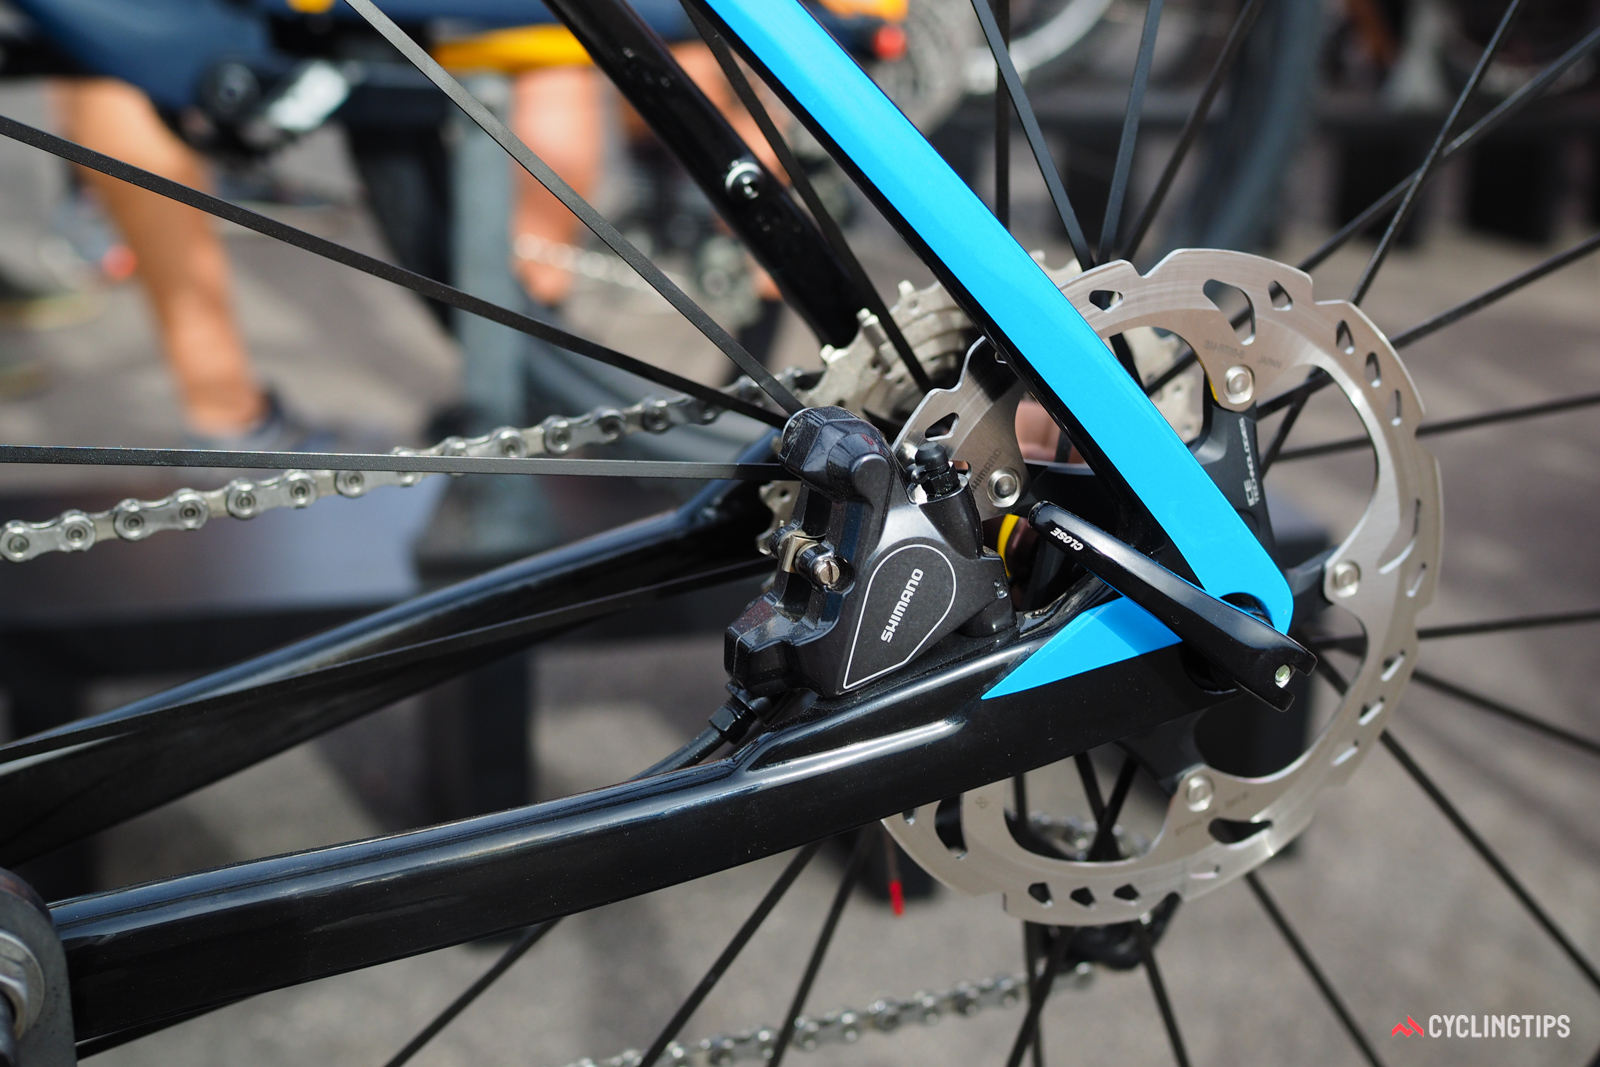 As with virtually every disc-equipped road bike in 2017, the Devinci Hatchet will come equipped with 12mm thru-axles and flat-mount calipers front and rear.